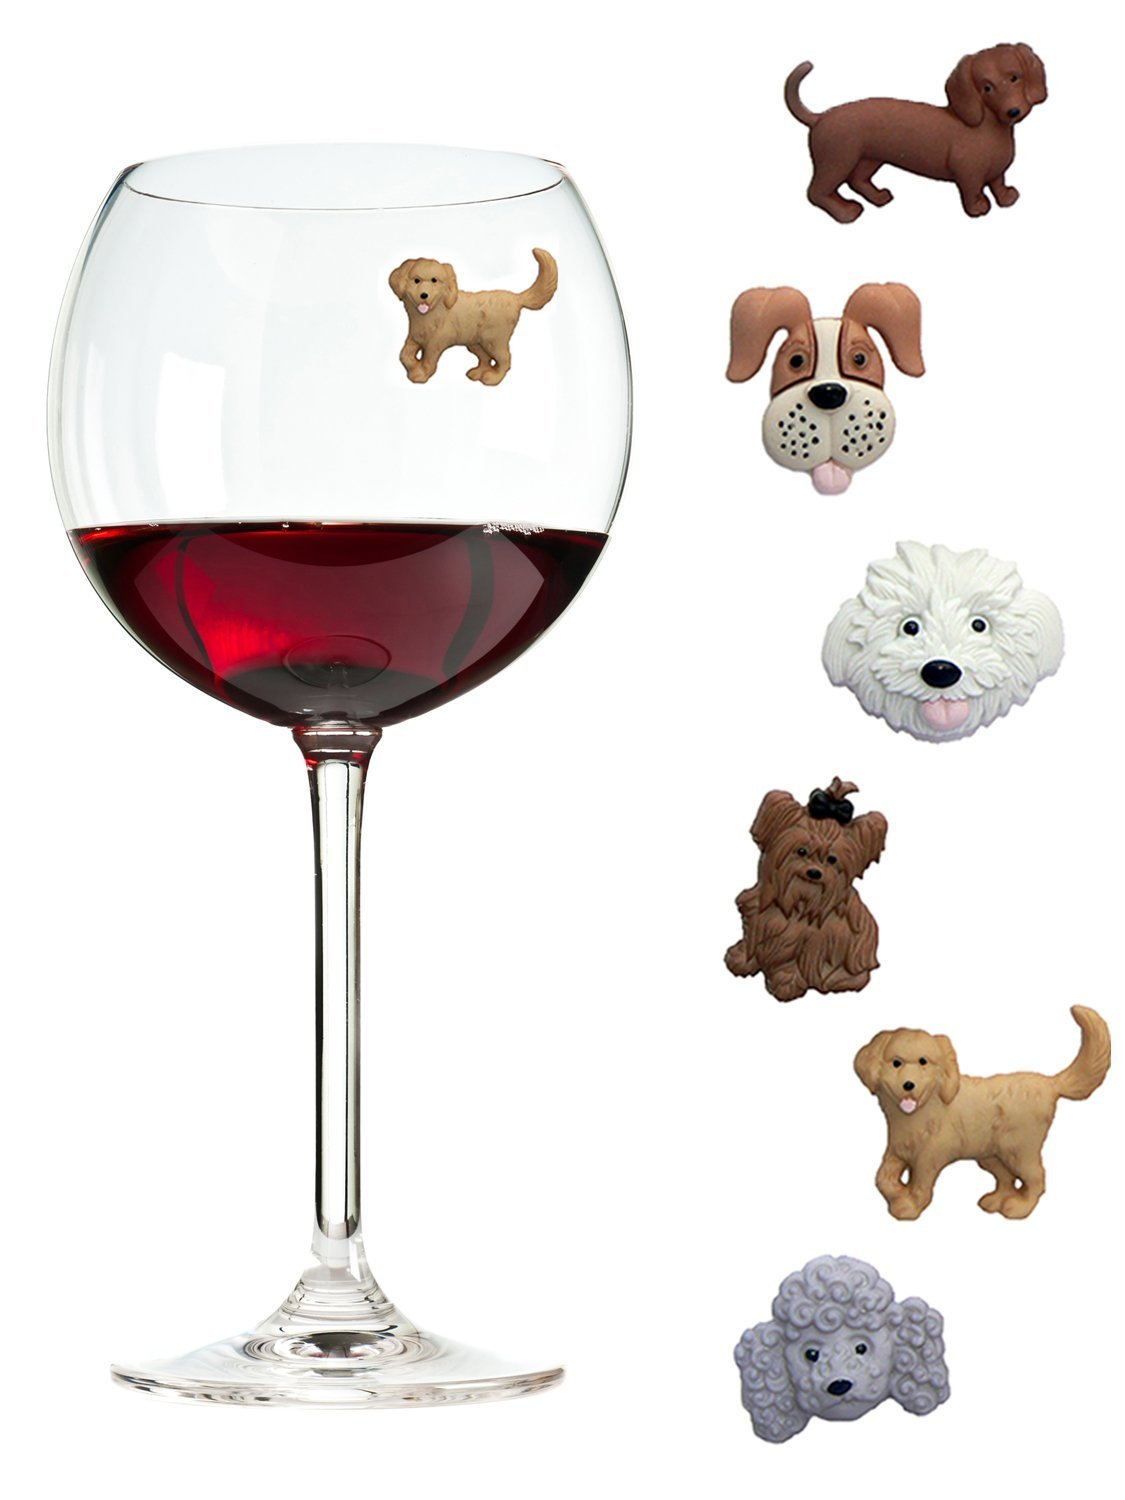 Never lose your wine glass again! - $